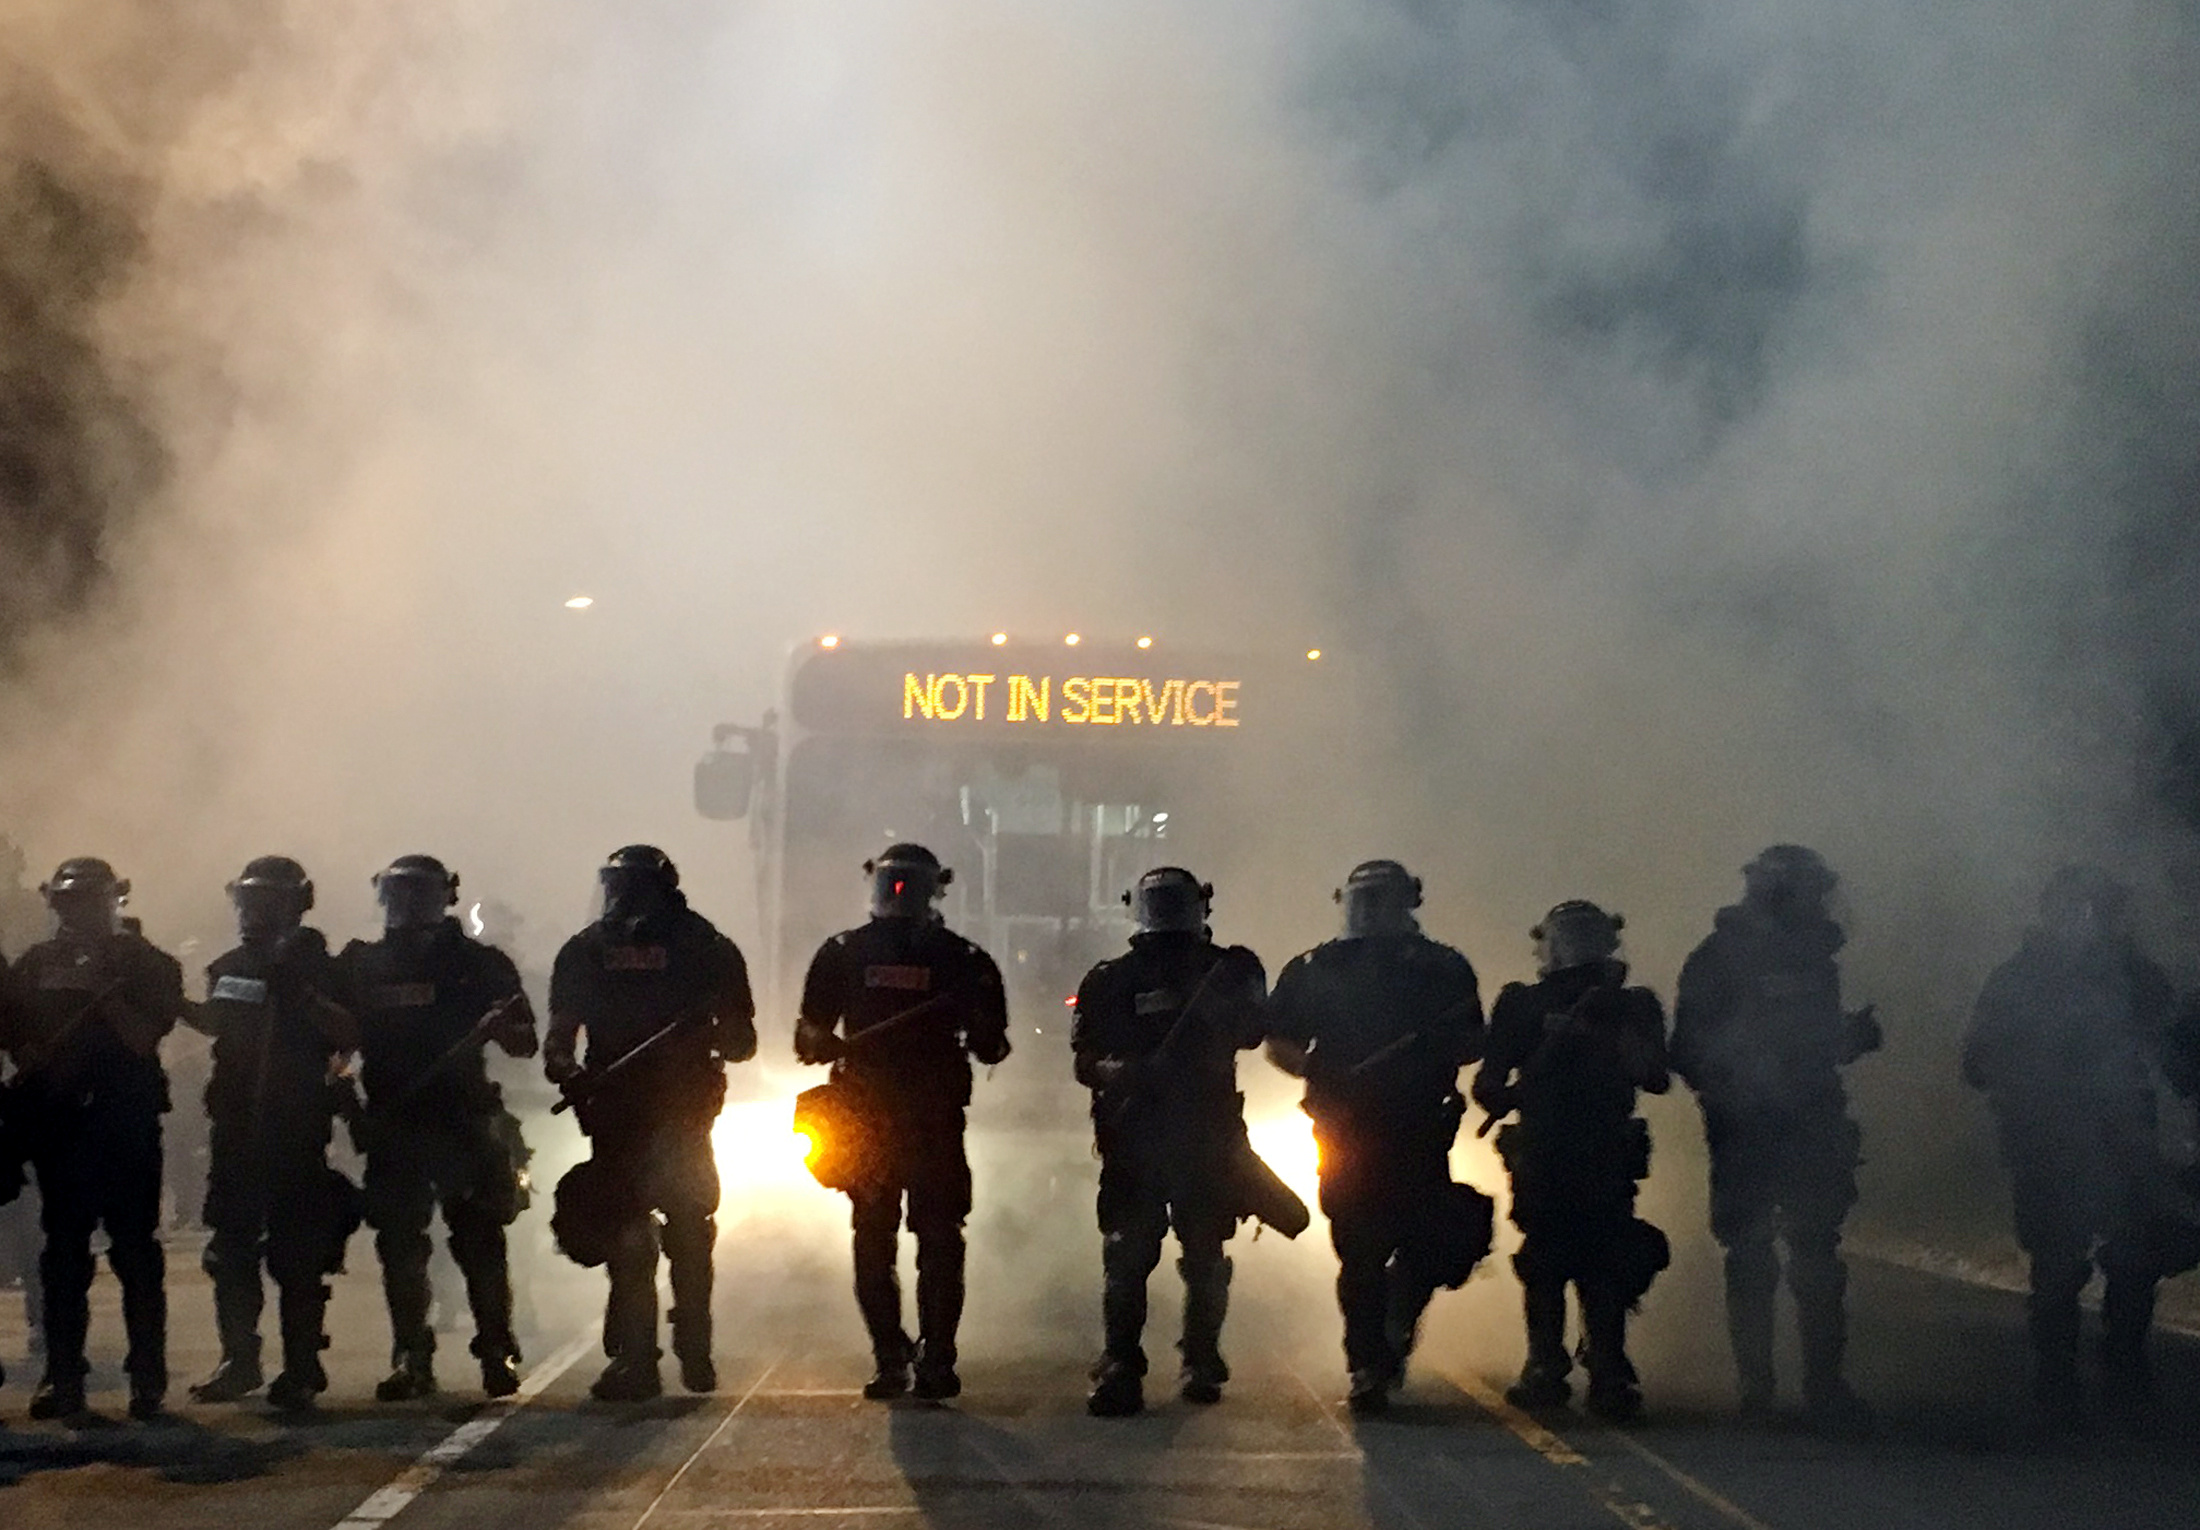 Police officers wearing riot gear block a road during protests after police fatally shot Keith Lamont Scott in Charlotte, North Carolina, Sept. 20, 2016.